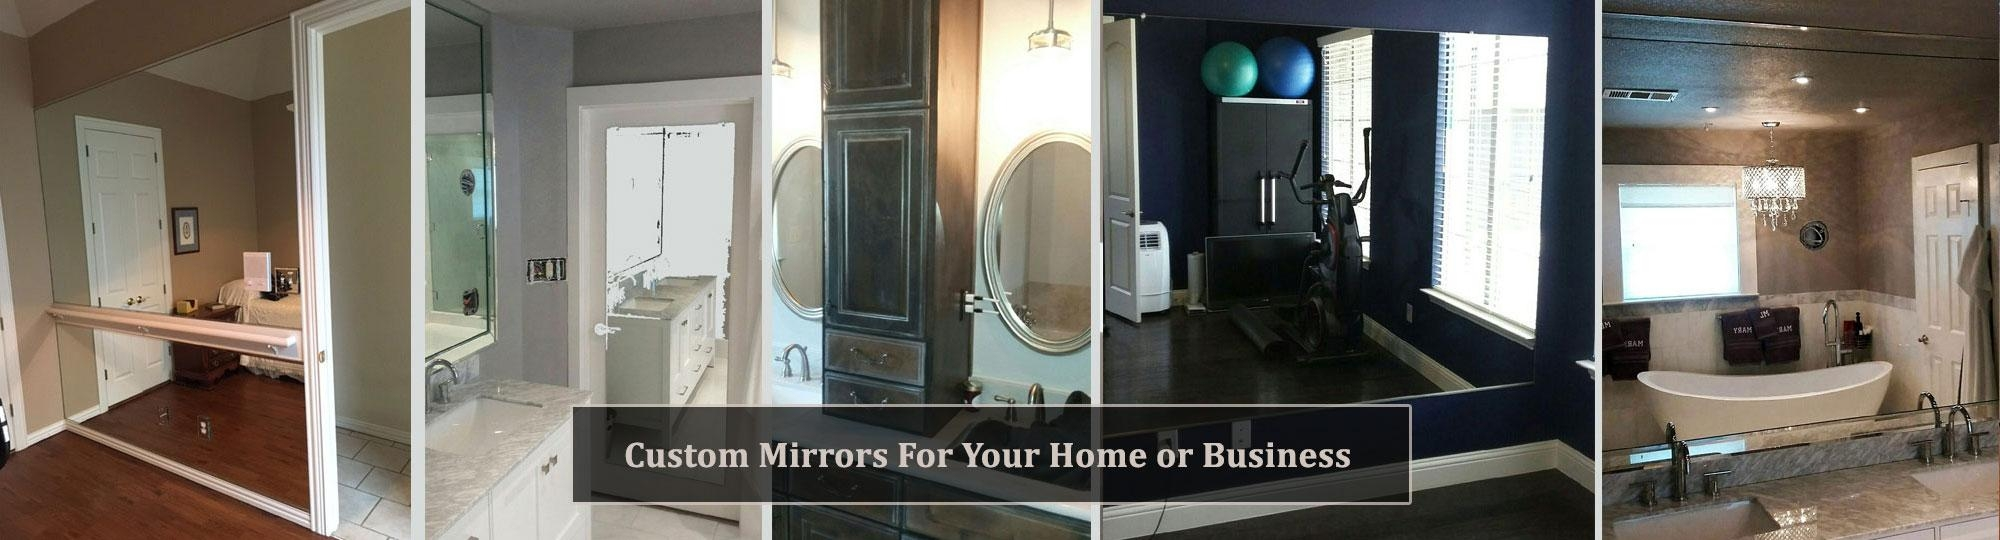 Customized Glass And Mirror Services | Keller Glass & Mirror Within Orlando Custom Mirrors (Image 15 of 20)